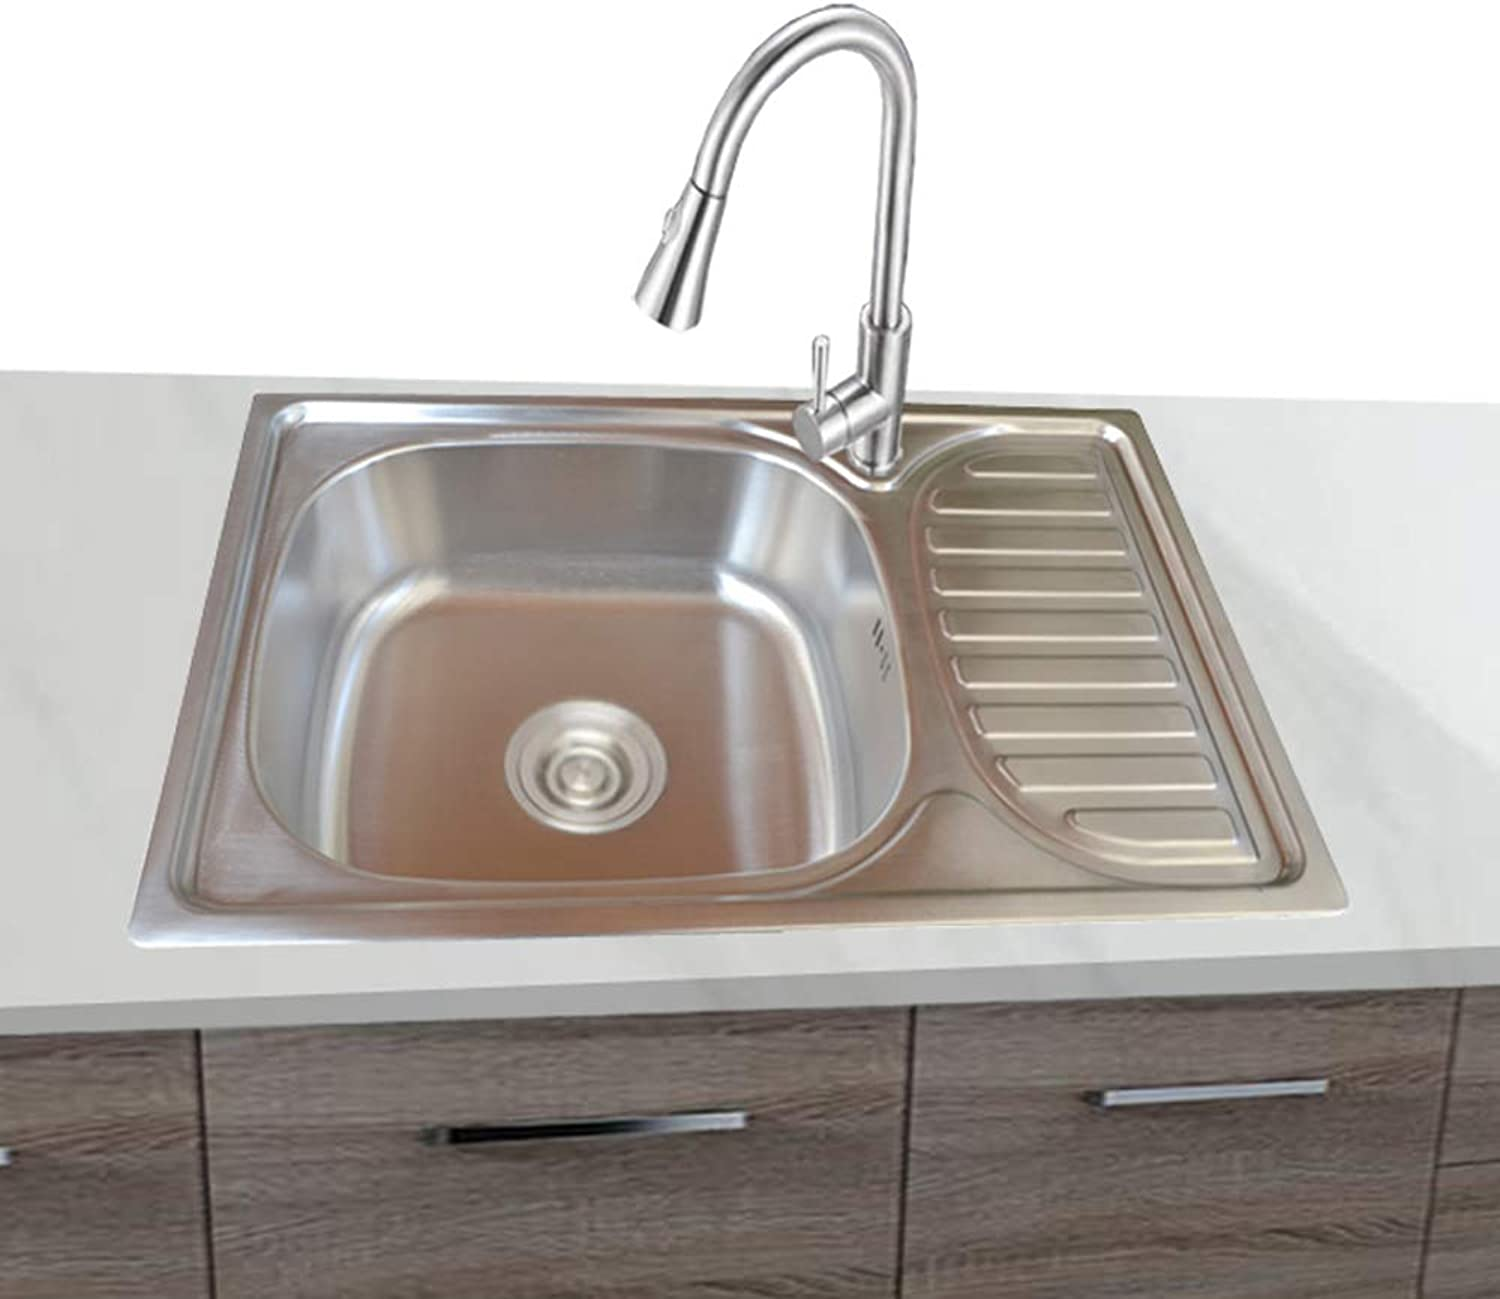 1 x Built-in Sink Stainless Steel 304 Square, 1 Basin with Shelf Right Sink 65 cm L 42 cm B